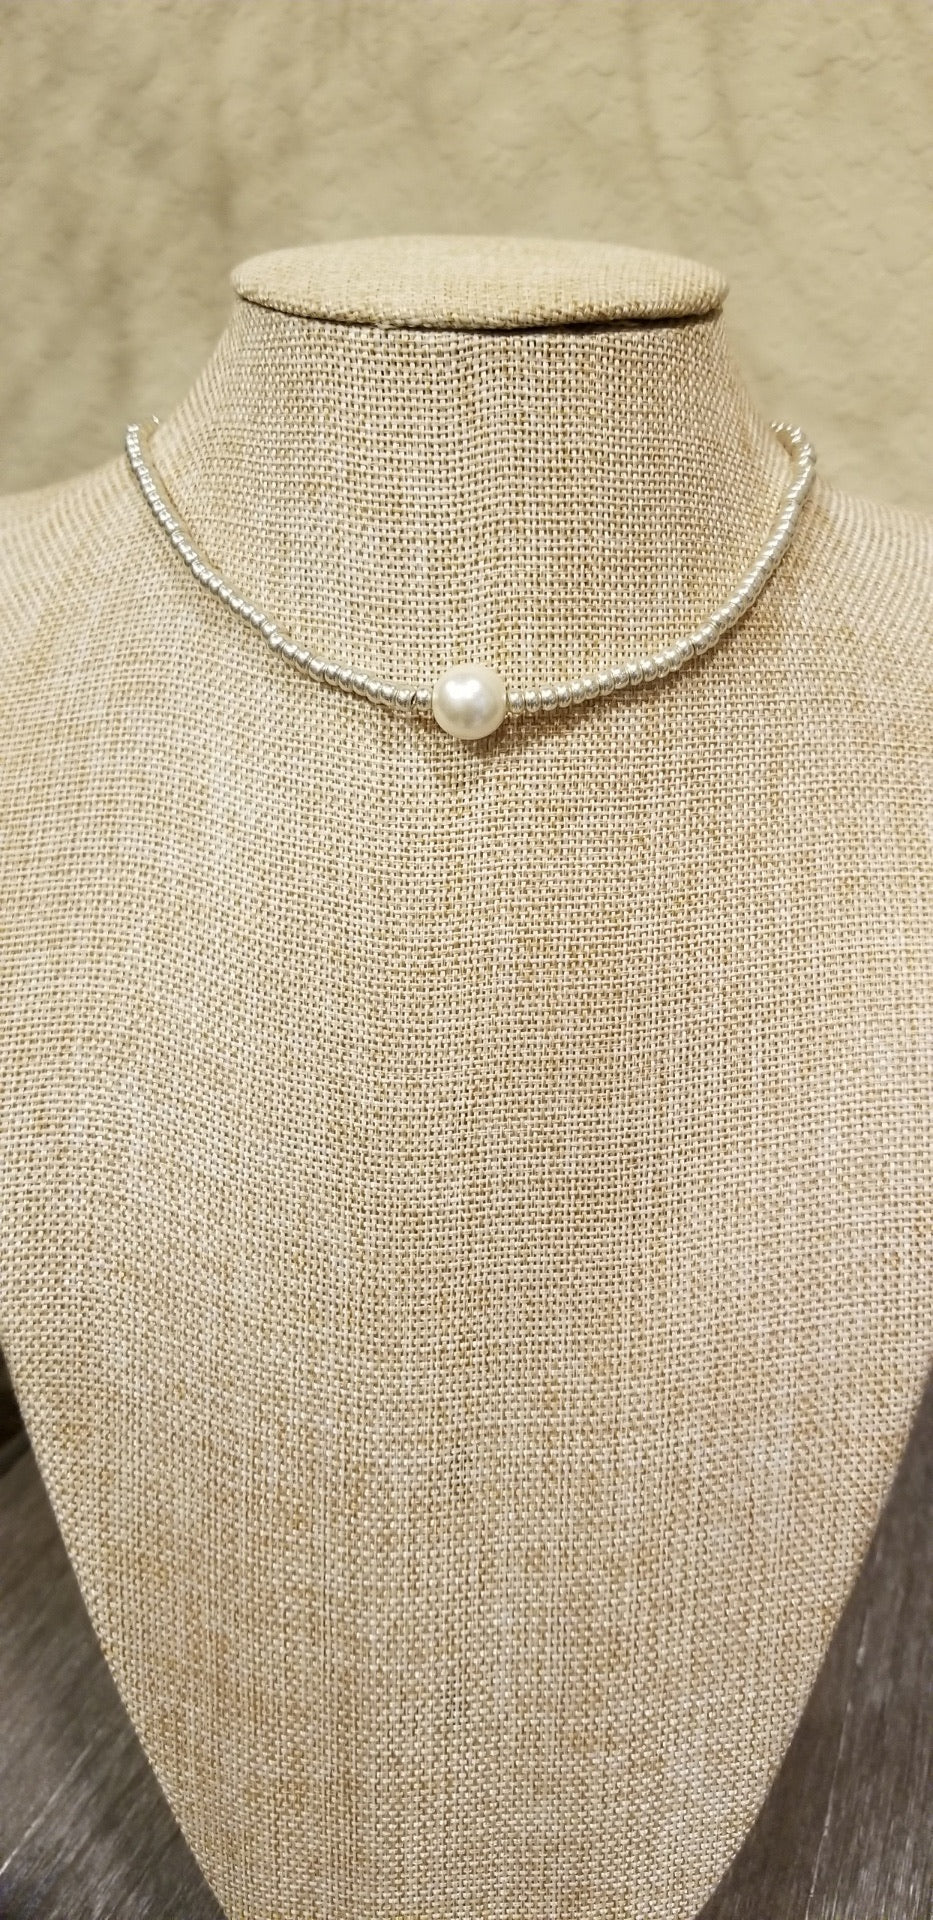 Beaded Stretch Large Single Pearl Necklace